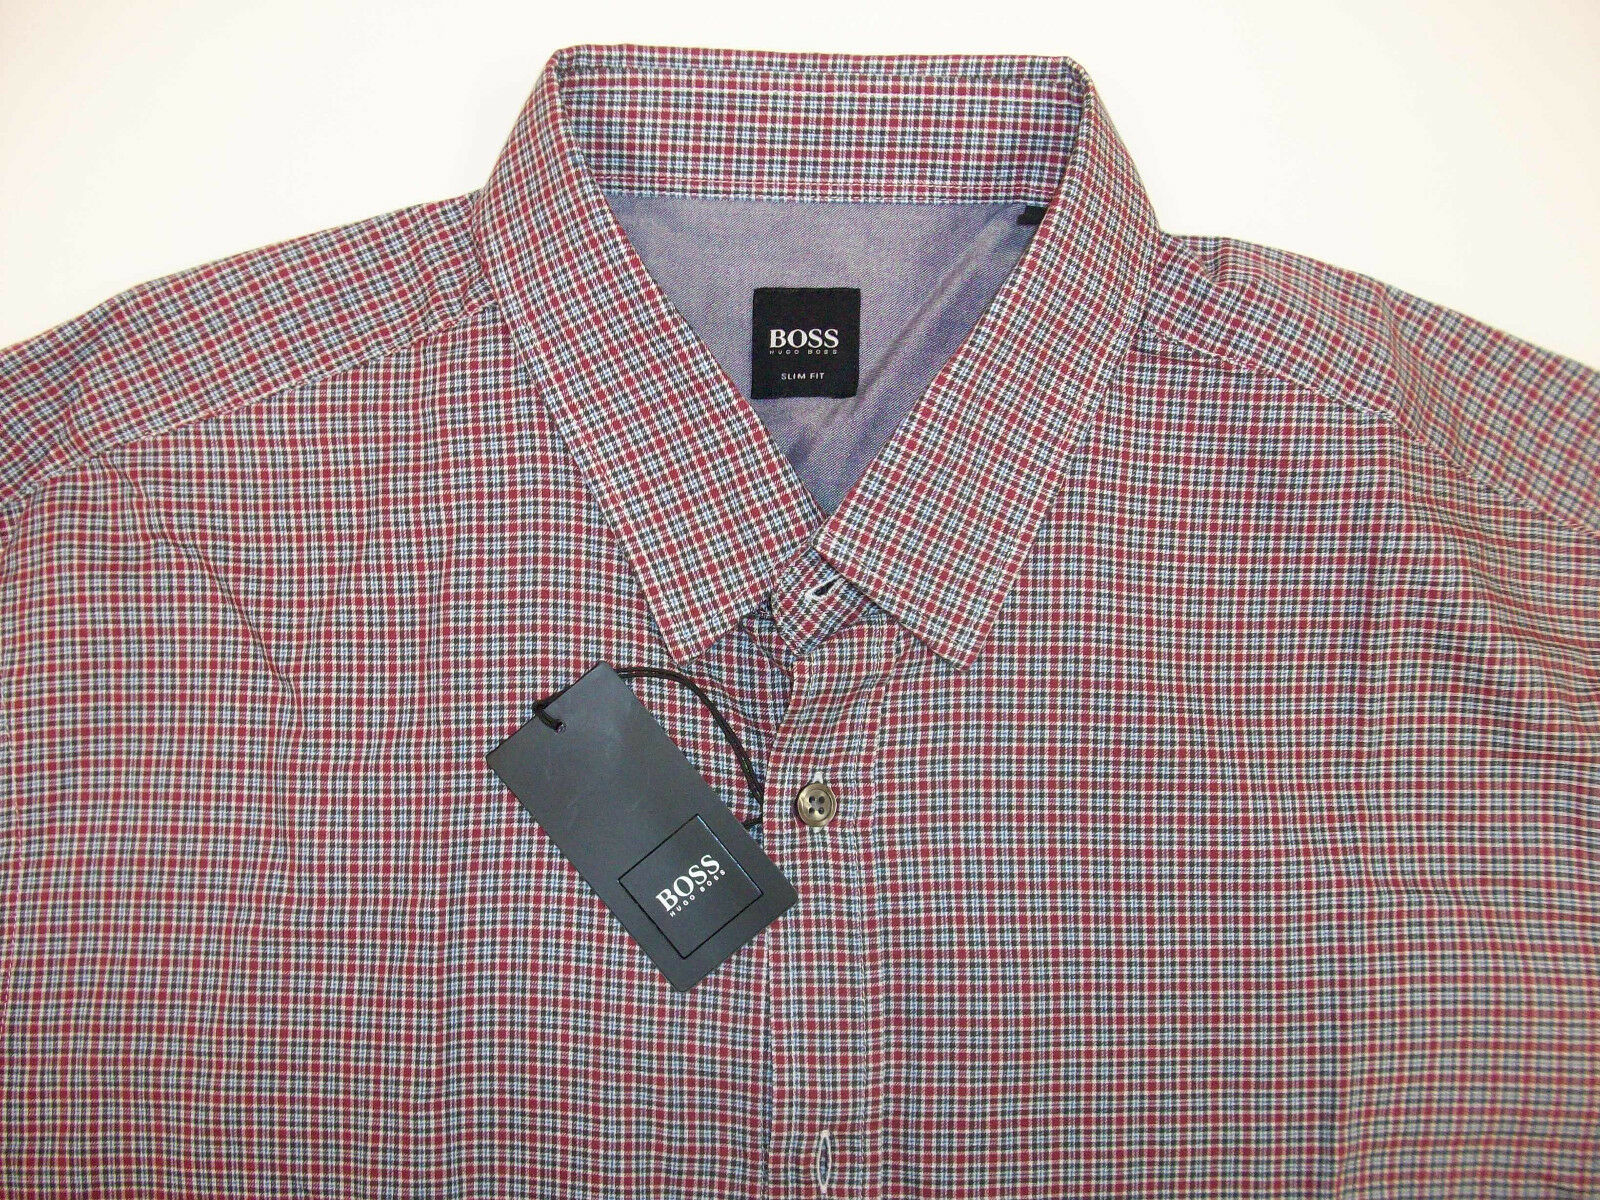 Hugo Boss LS RONNY Shirt    Slim Fit Tattersall Plaid Button Up Red bluee NWT